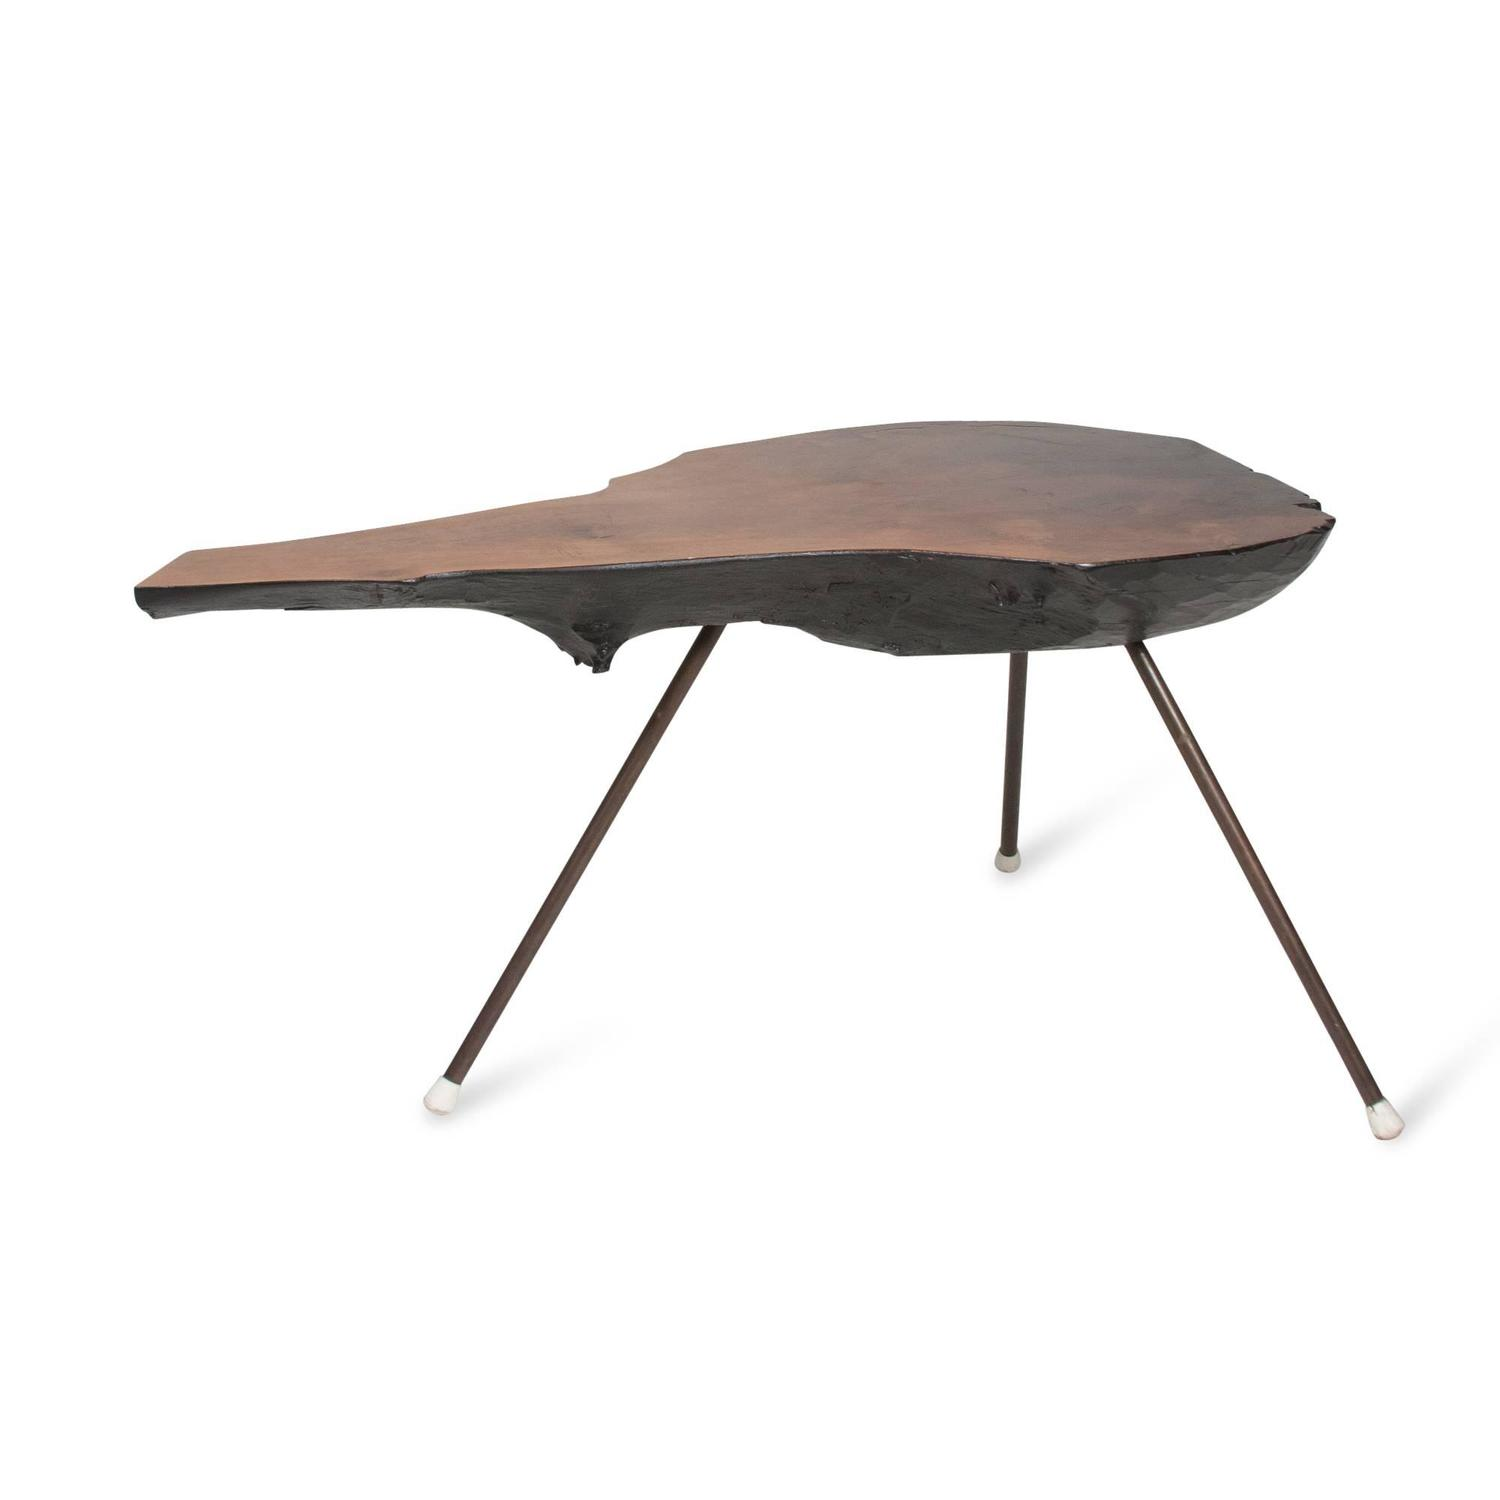 Tree trunk table by carl aubock for sale at 1stdibs - Tree trunk table and chairs ...